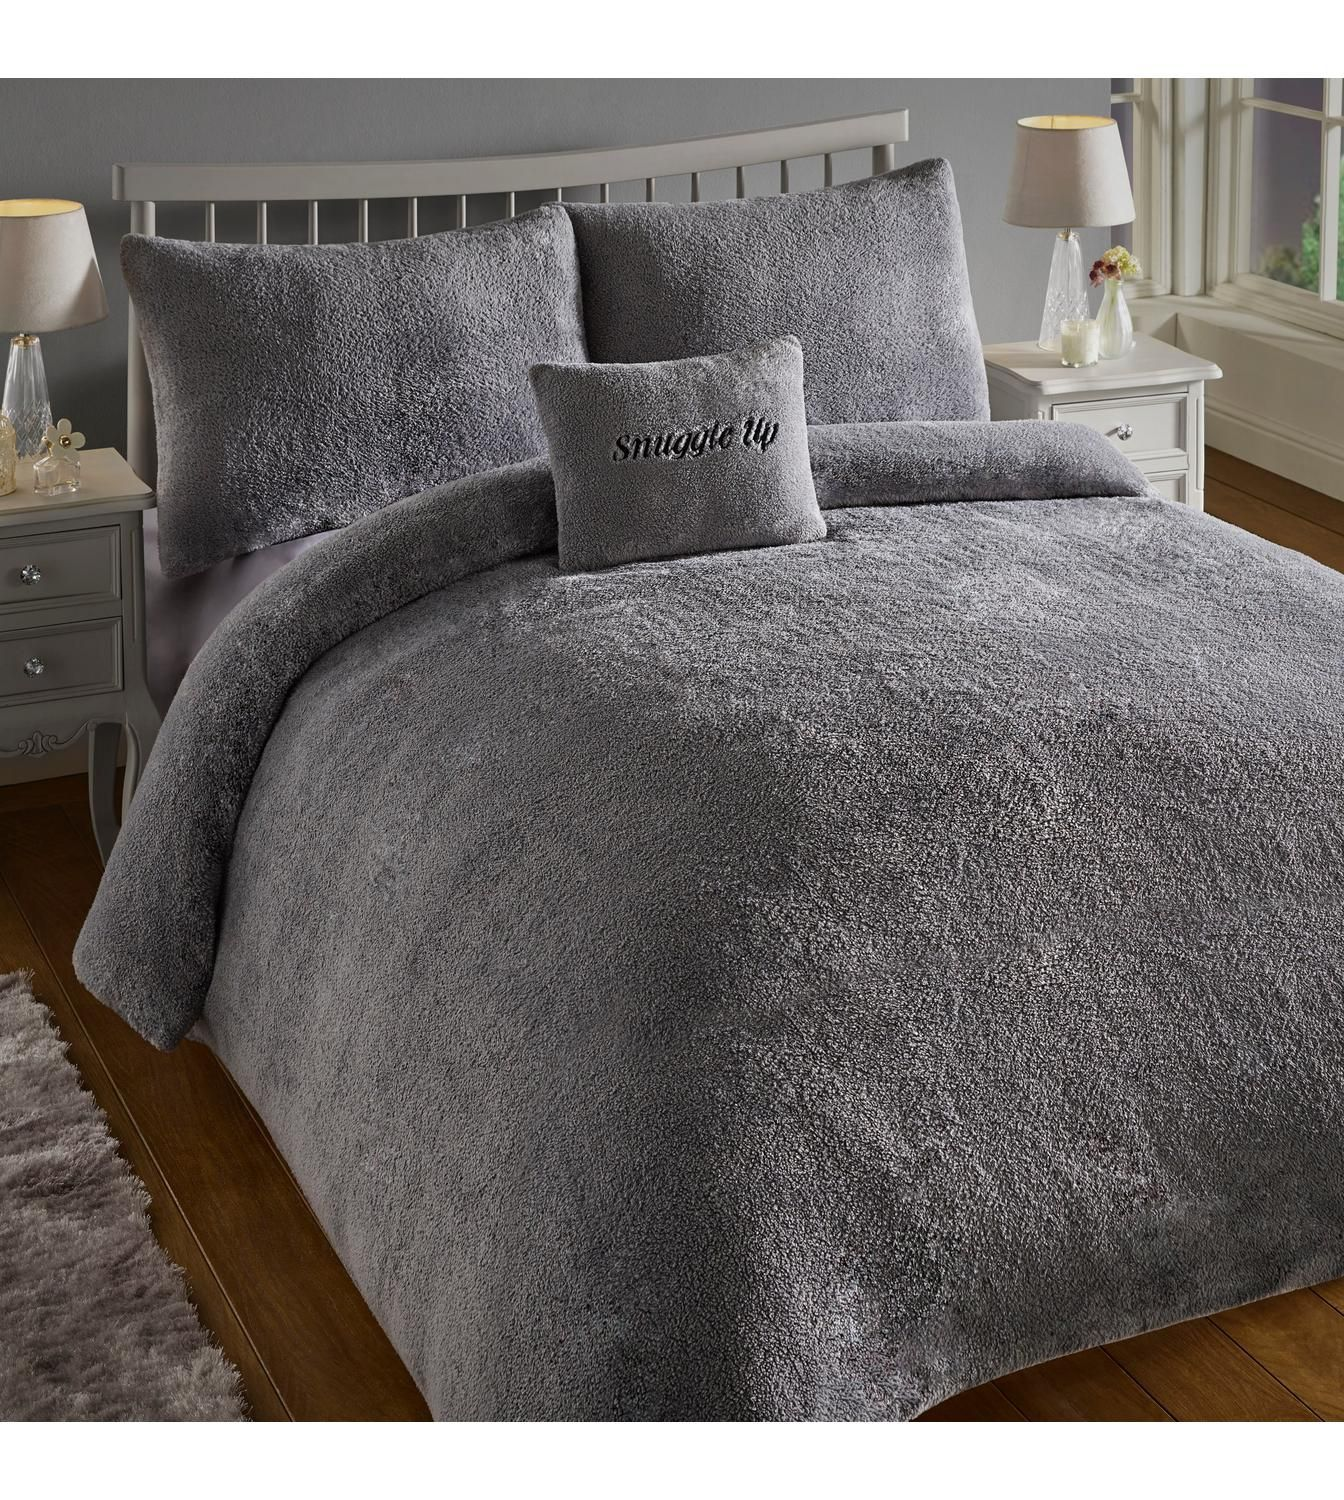 Teddy Bear Fleece Duvet Quilt Cover Set All Sizes Pillowcases Fitted Sheets Warm